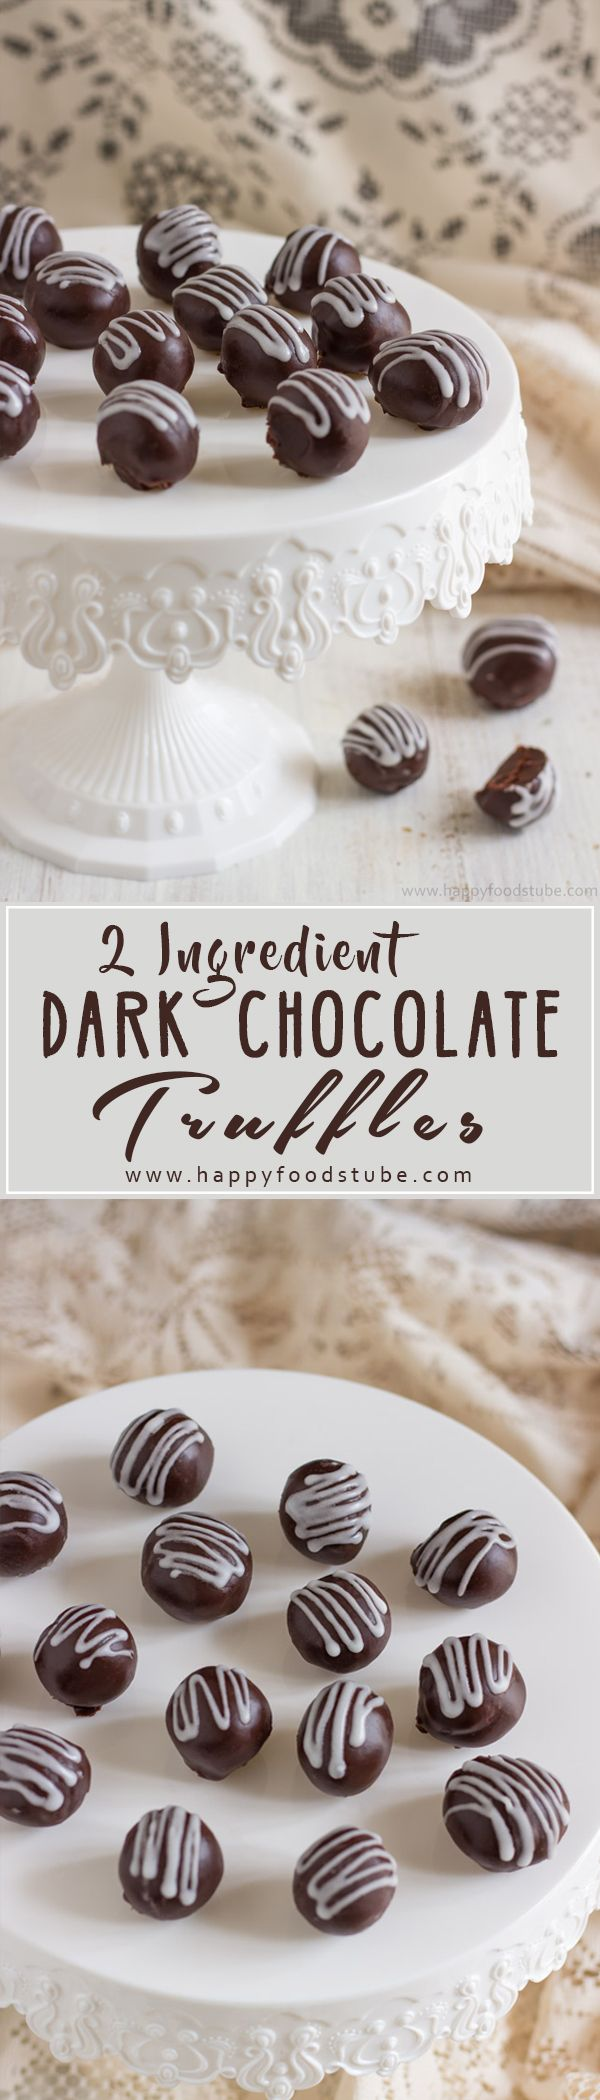 Homemade 2 Ingredient Dark Chocolate Truffles are rich, creamy and so tasty. Make them for Christmas, New Year's Eve party or gift them | happyfoodstube.com